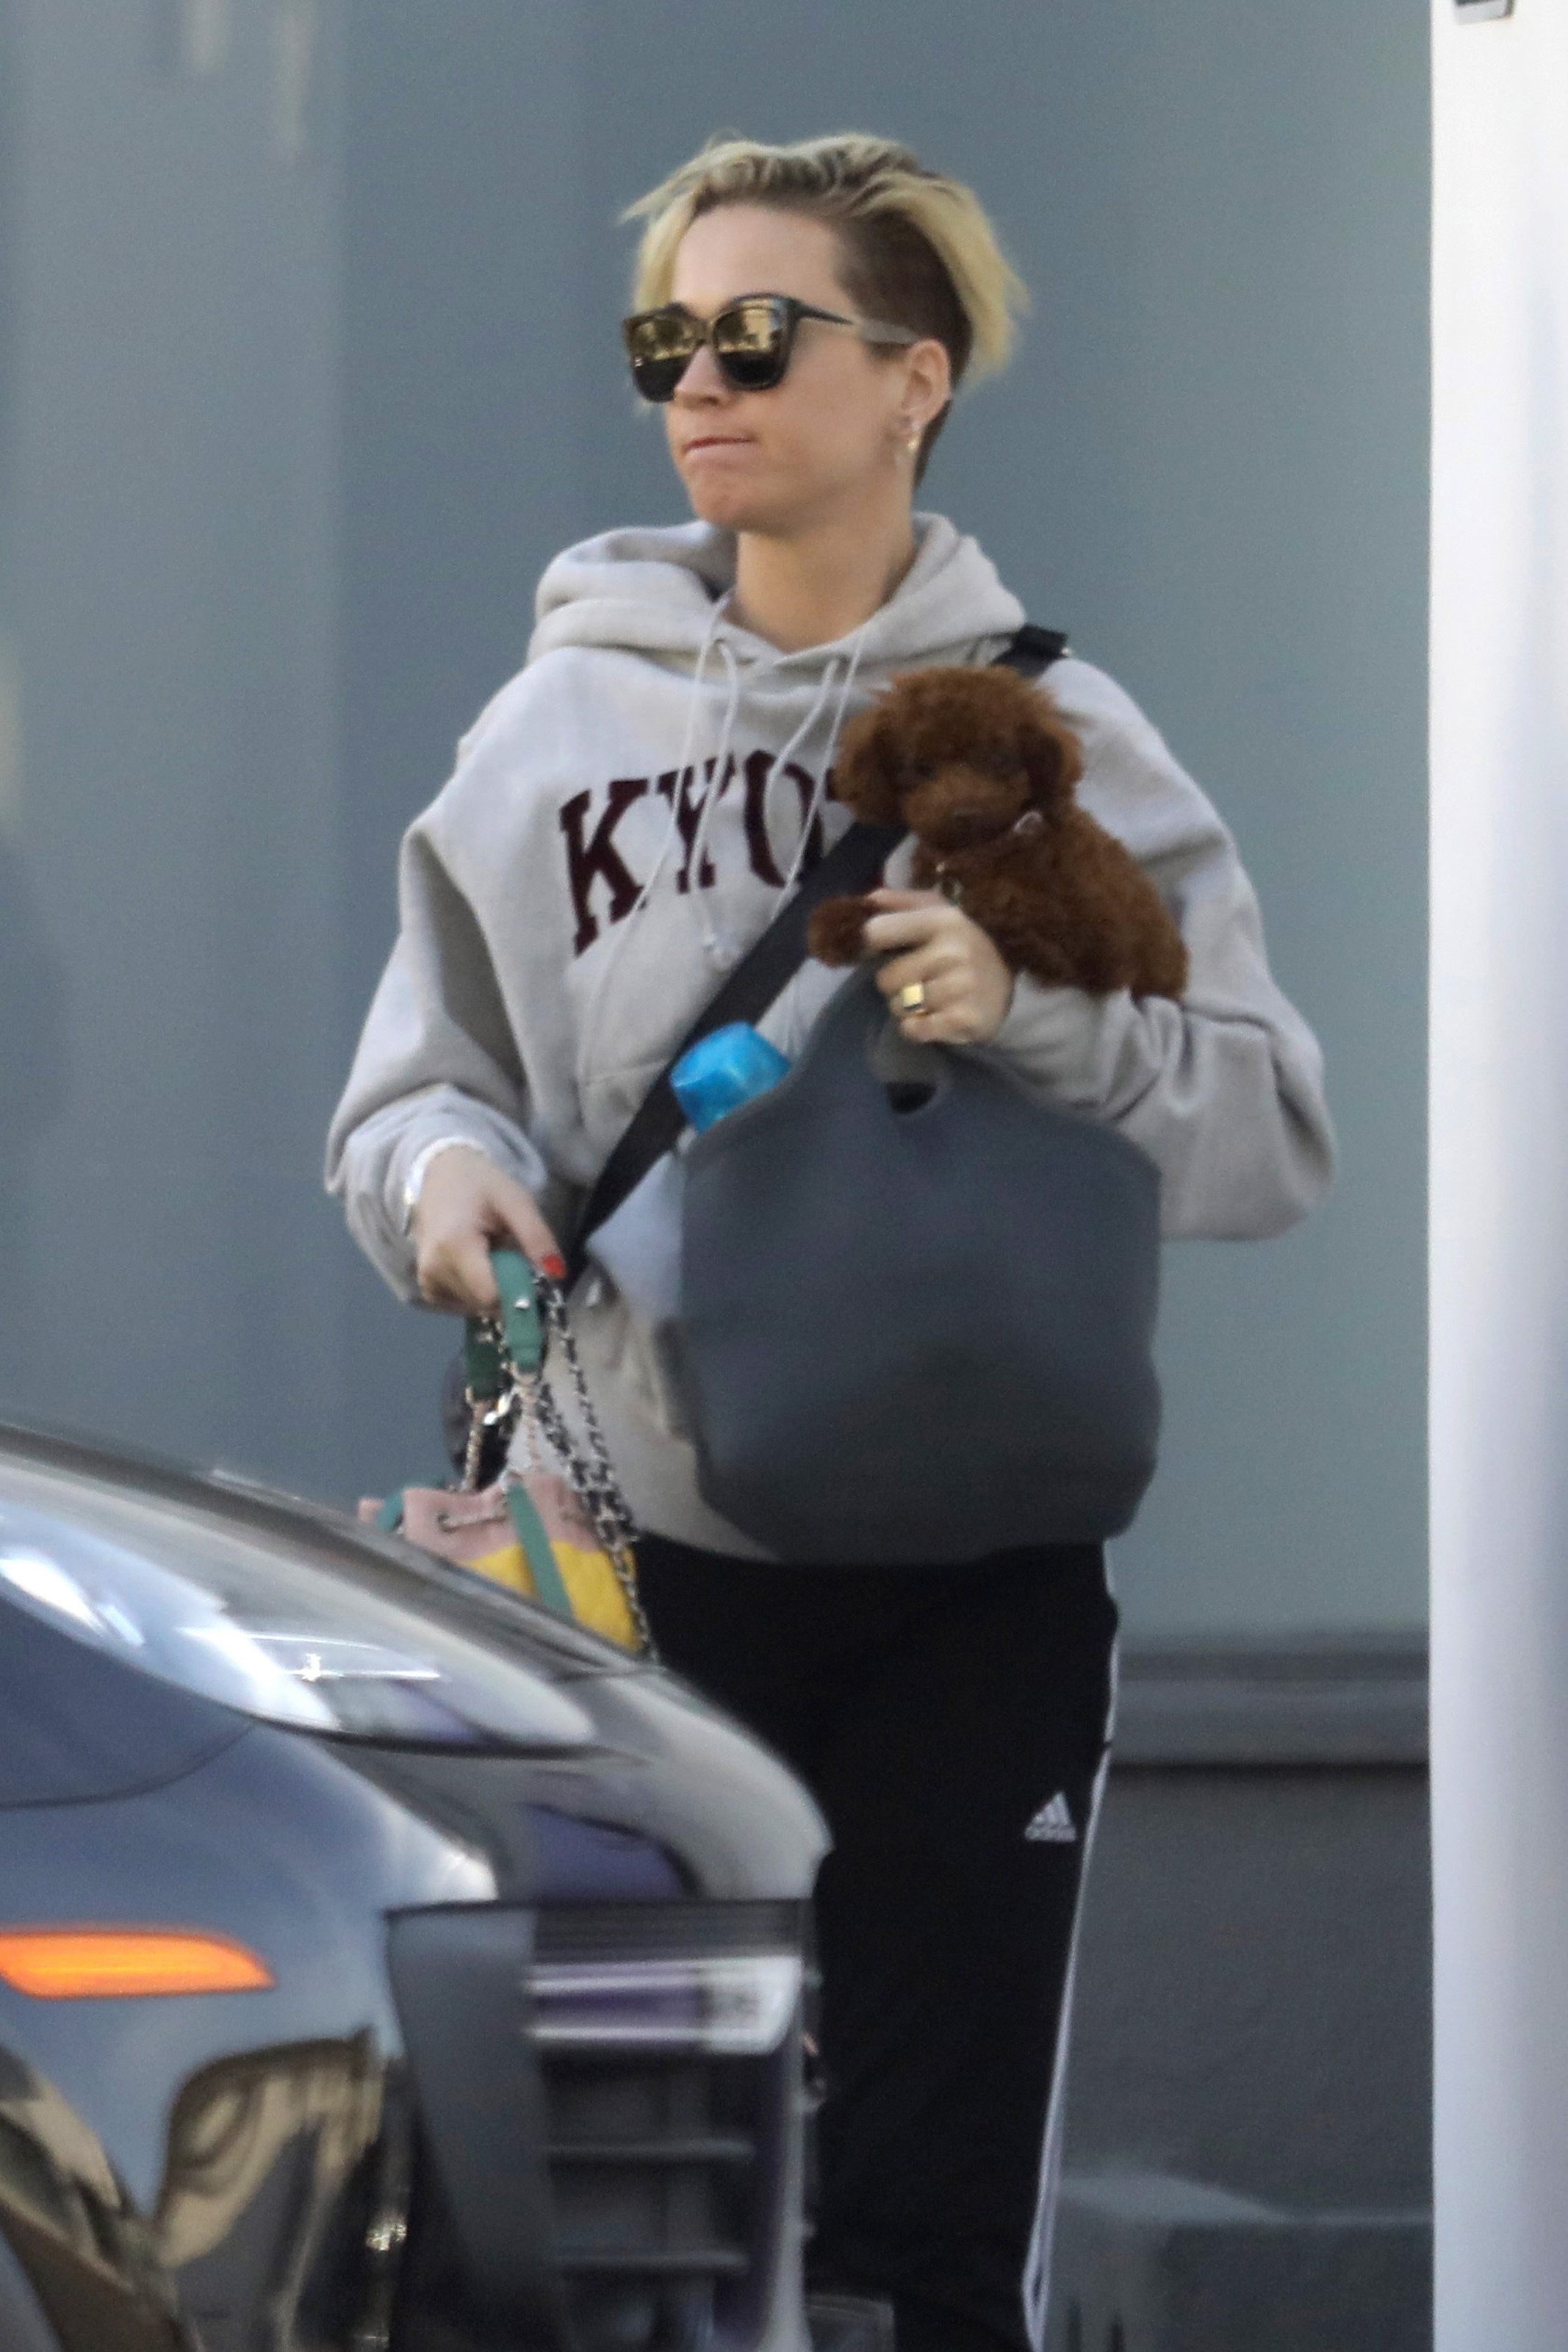 EXCLUSIVE Katy Perry Flashes Her New Pixie Cut As She Takes Her Lil Pups To Work